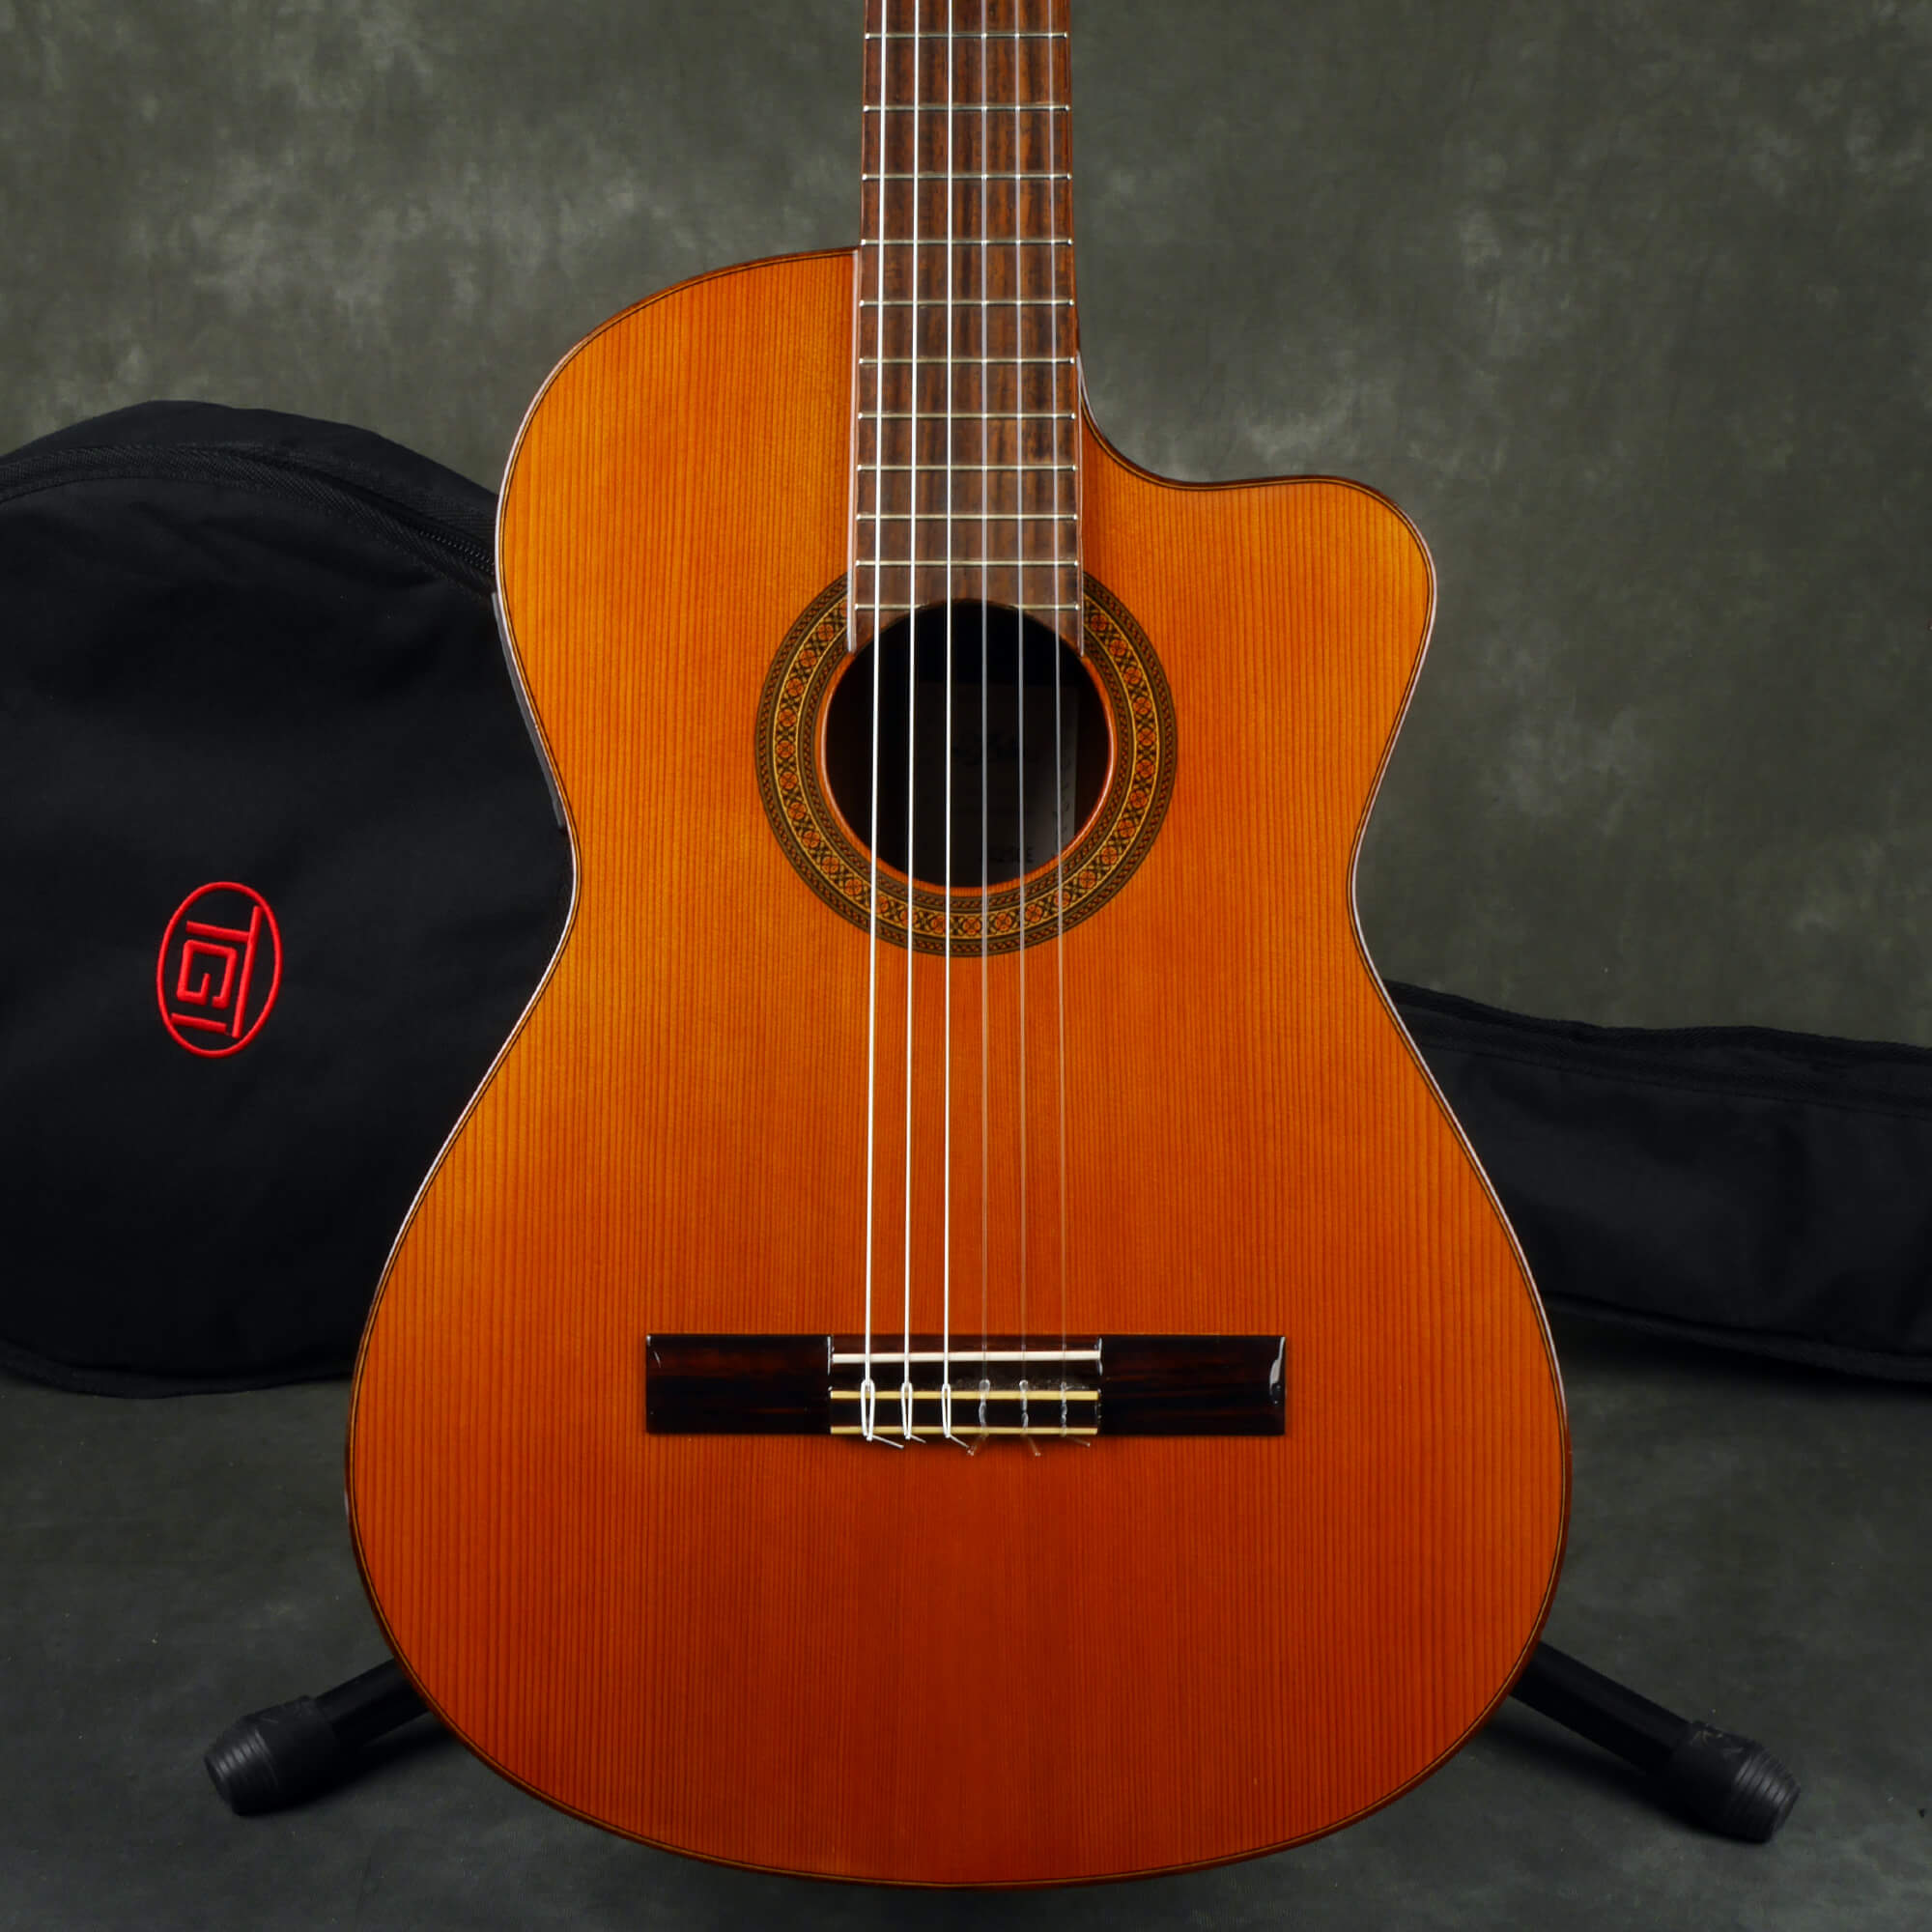 Aria Concert AC-25CE Electro-Classical Guitar, Made In Spain w/Bag - 2nd Hand